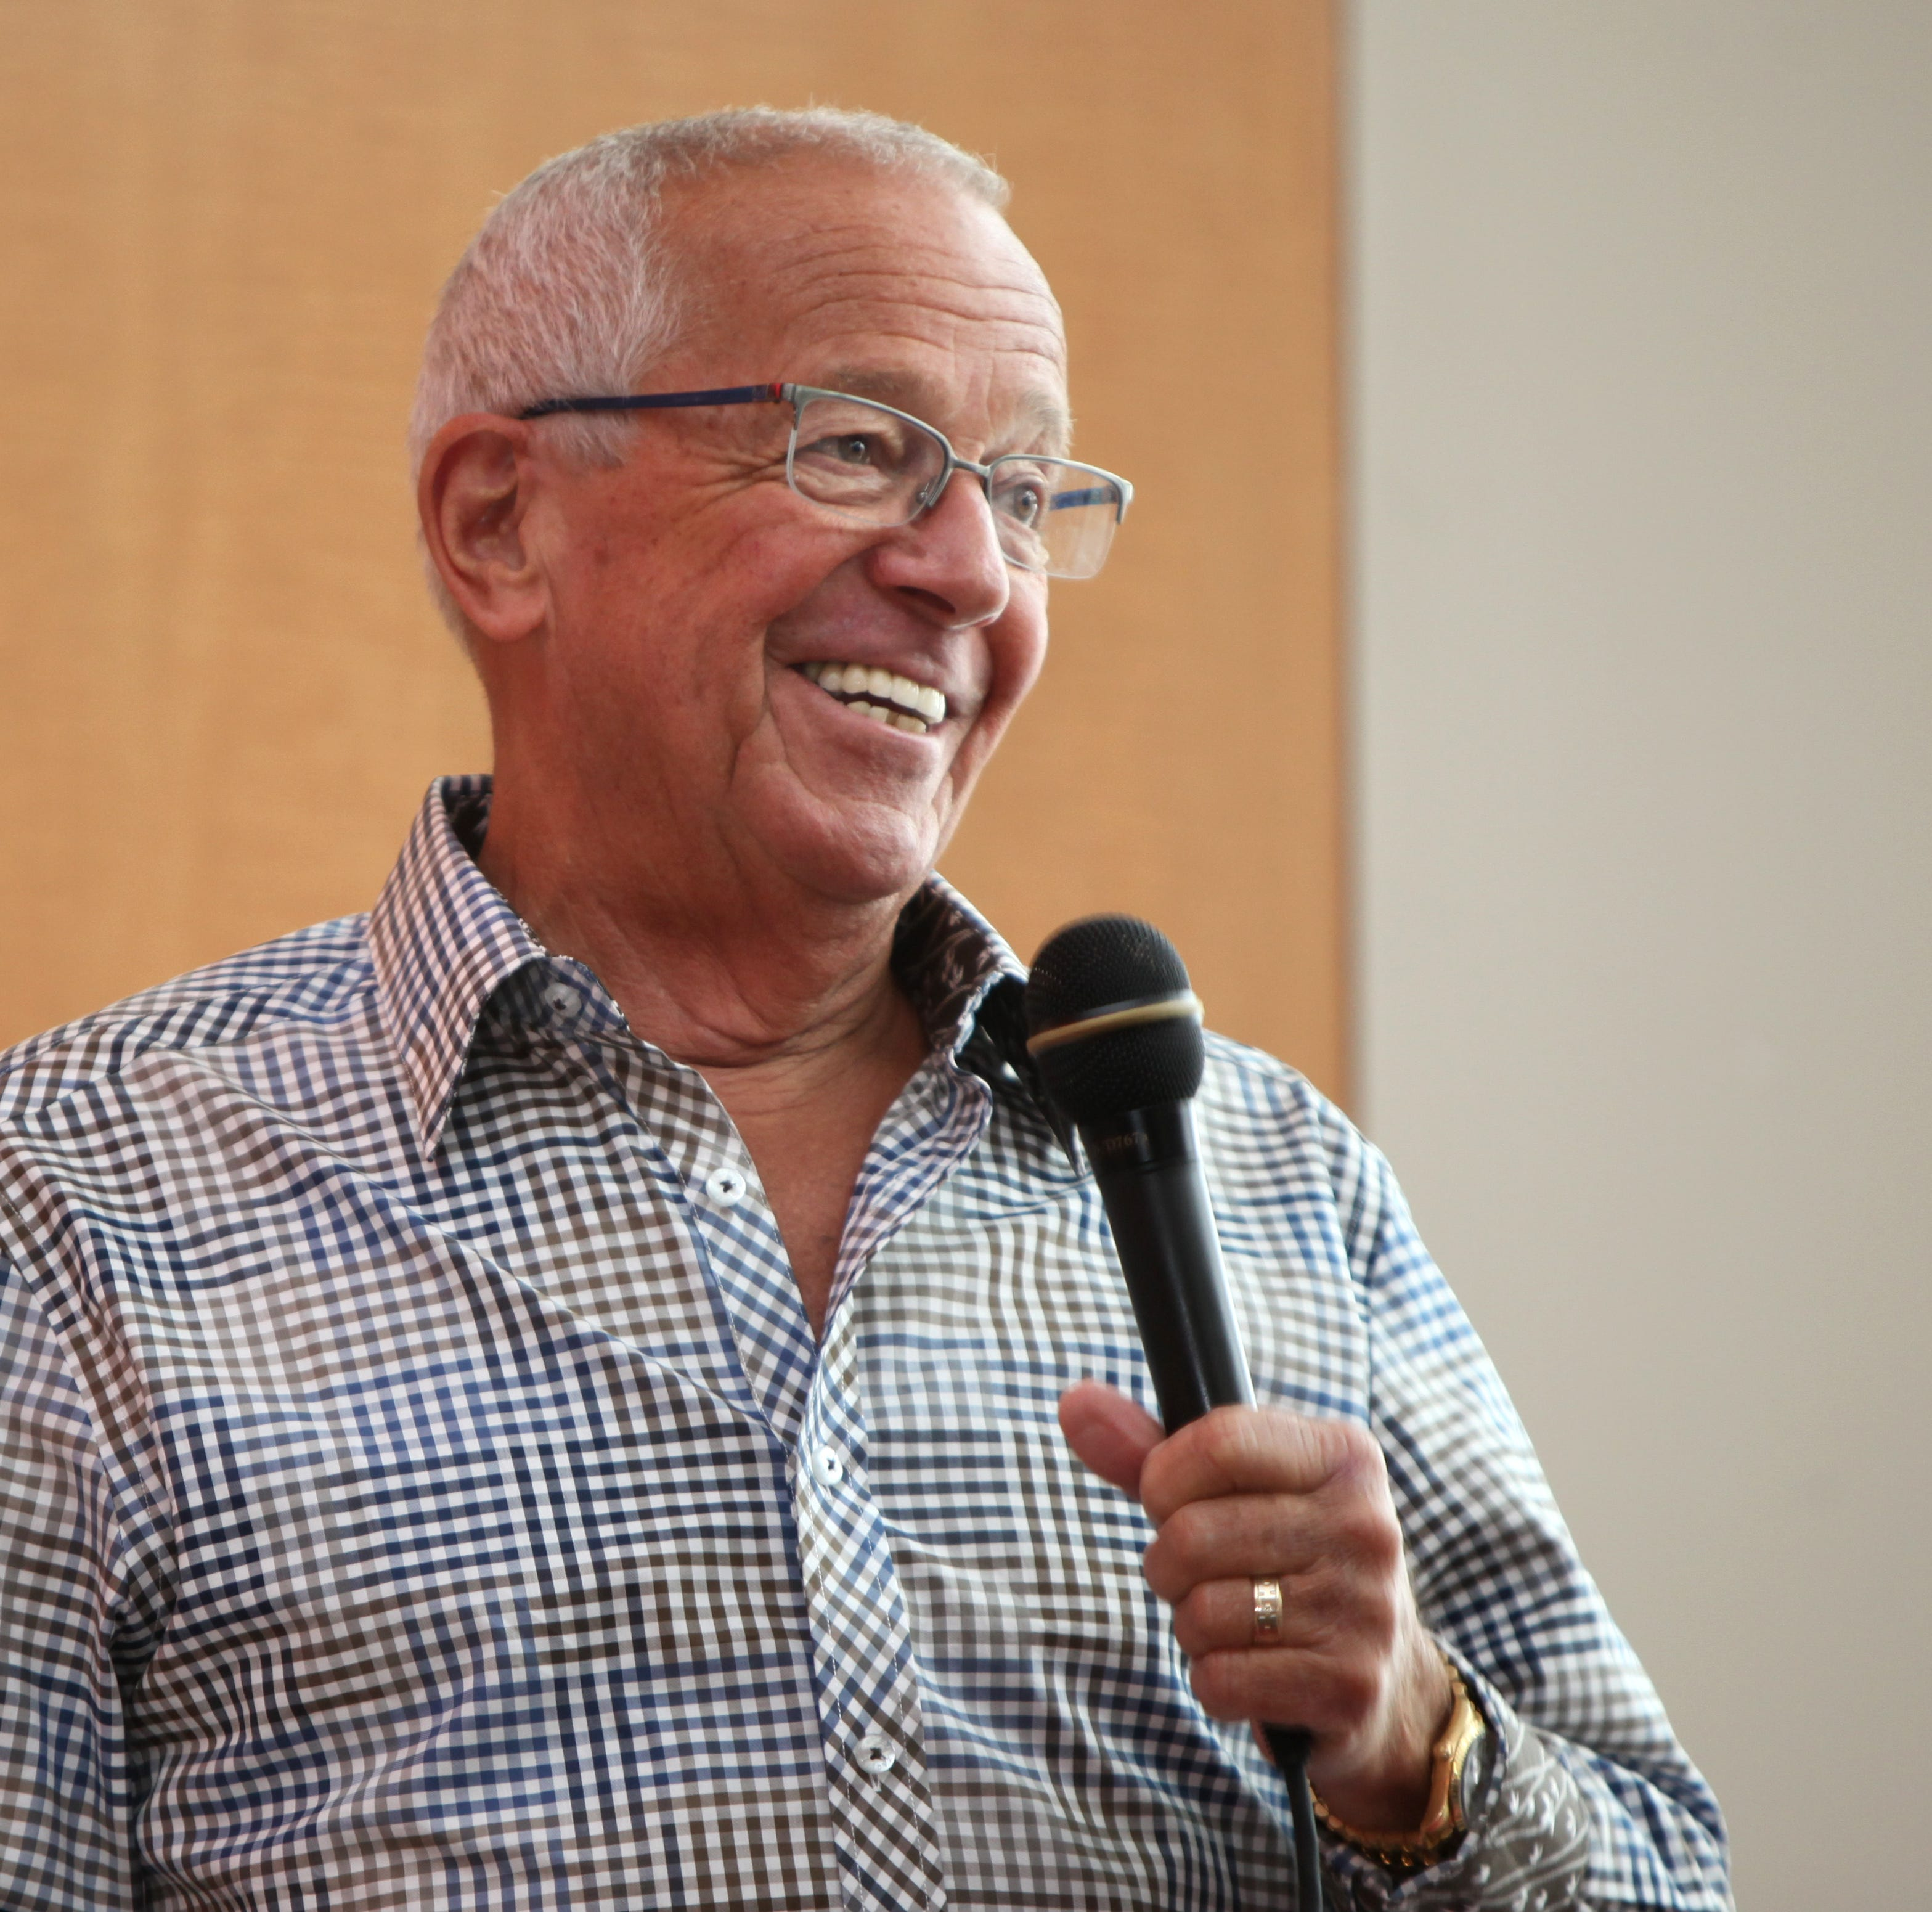 Doc column: We have one more summer before the sun sets on our time with Marty Brennaman